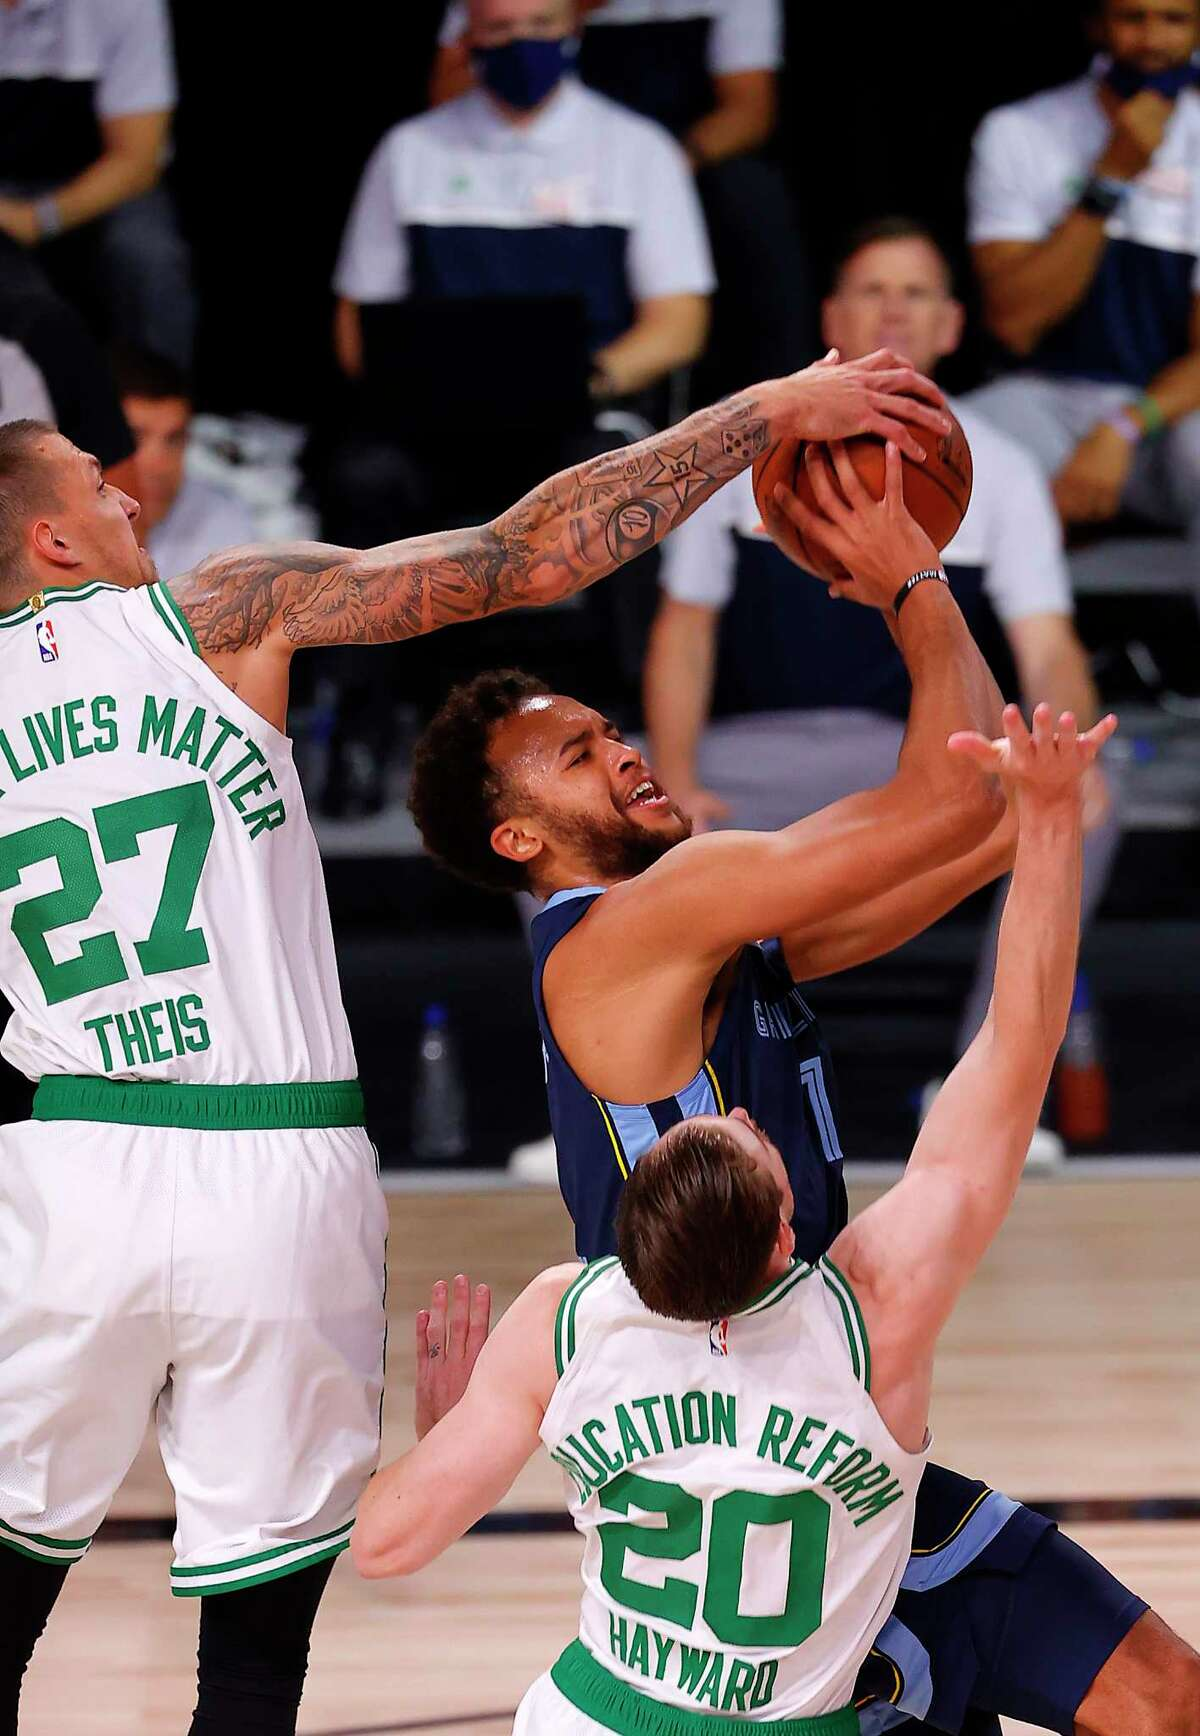 Kyle Anderson, center, of the Memphis Grizzlies', tries to shoot the ball as Daniel Theis, left, of the Boston Celtics and Gordon Hayward, right, of the Boston Celtics defend during the first quarter